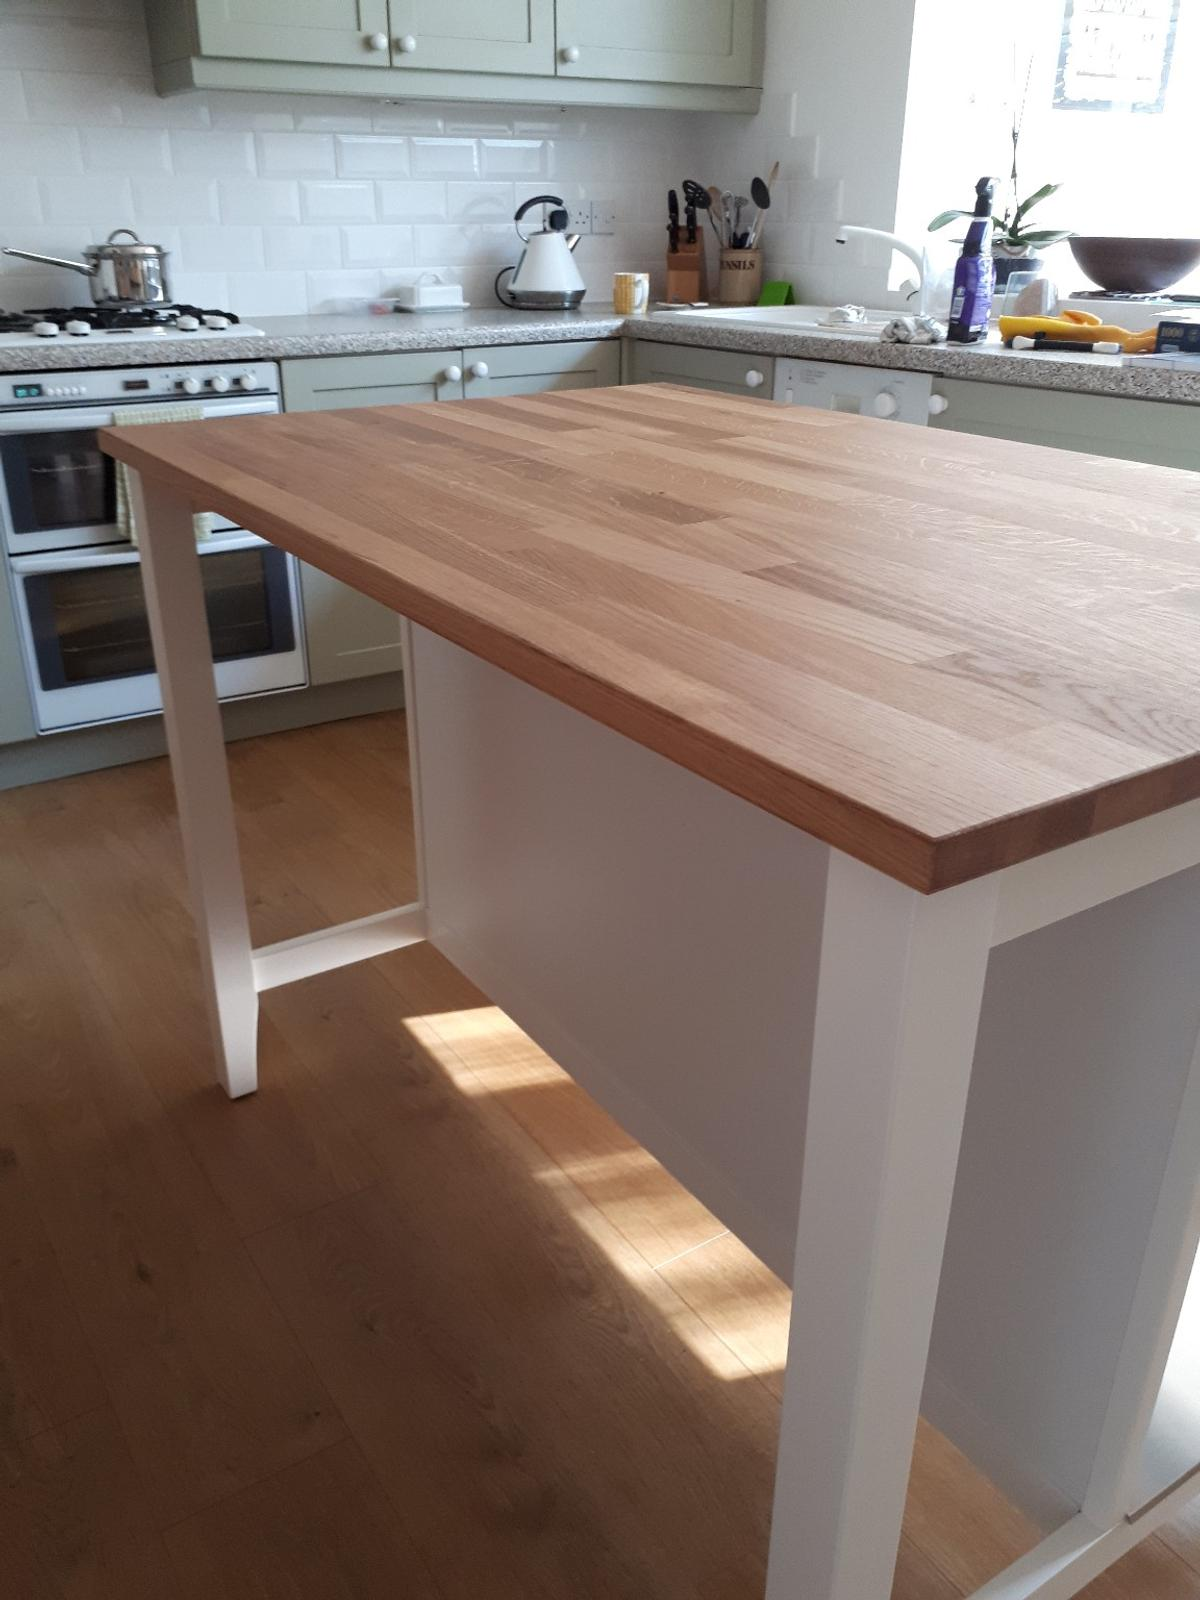 ikea islands kitchen ikea stenstorp kitchen island in ch63 wirral for 163 200 00 for sale shpock 126